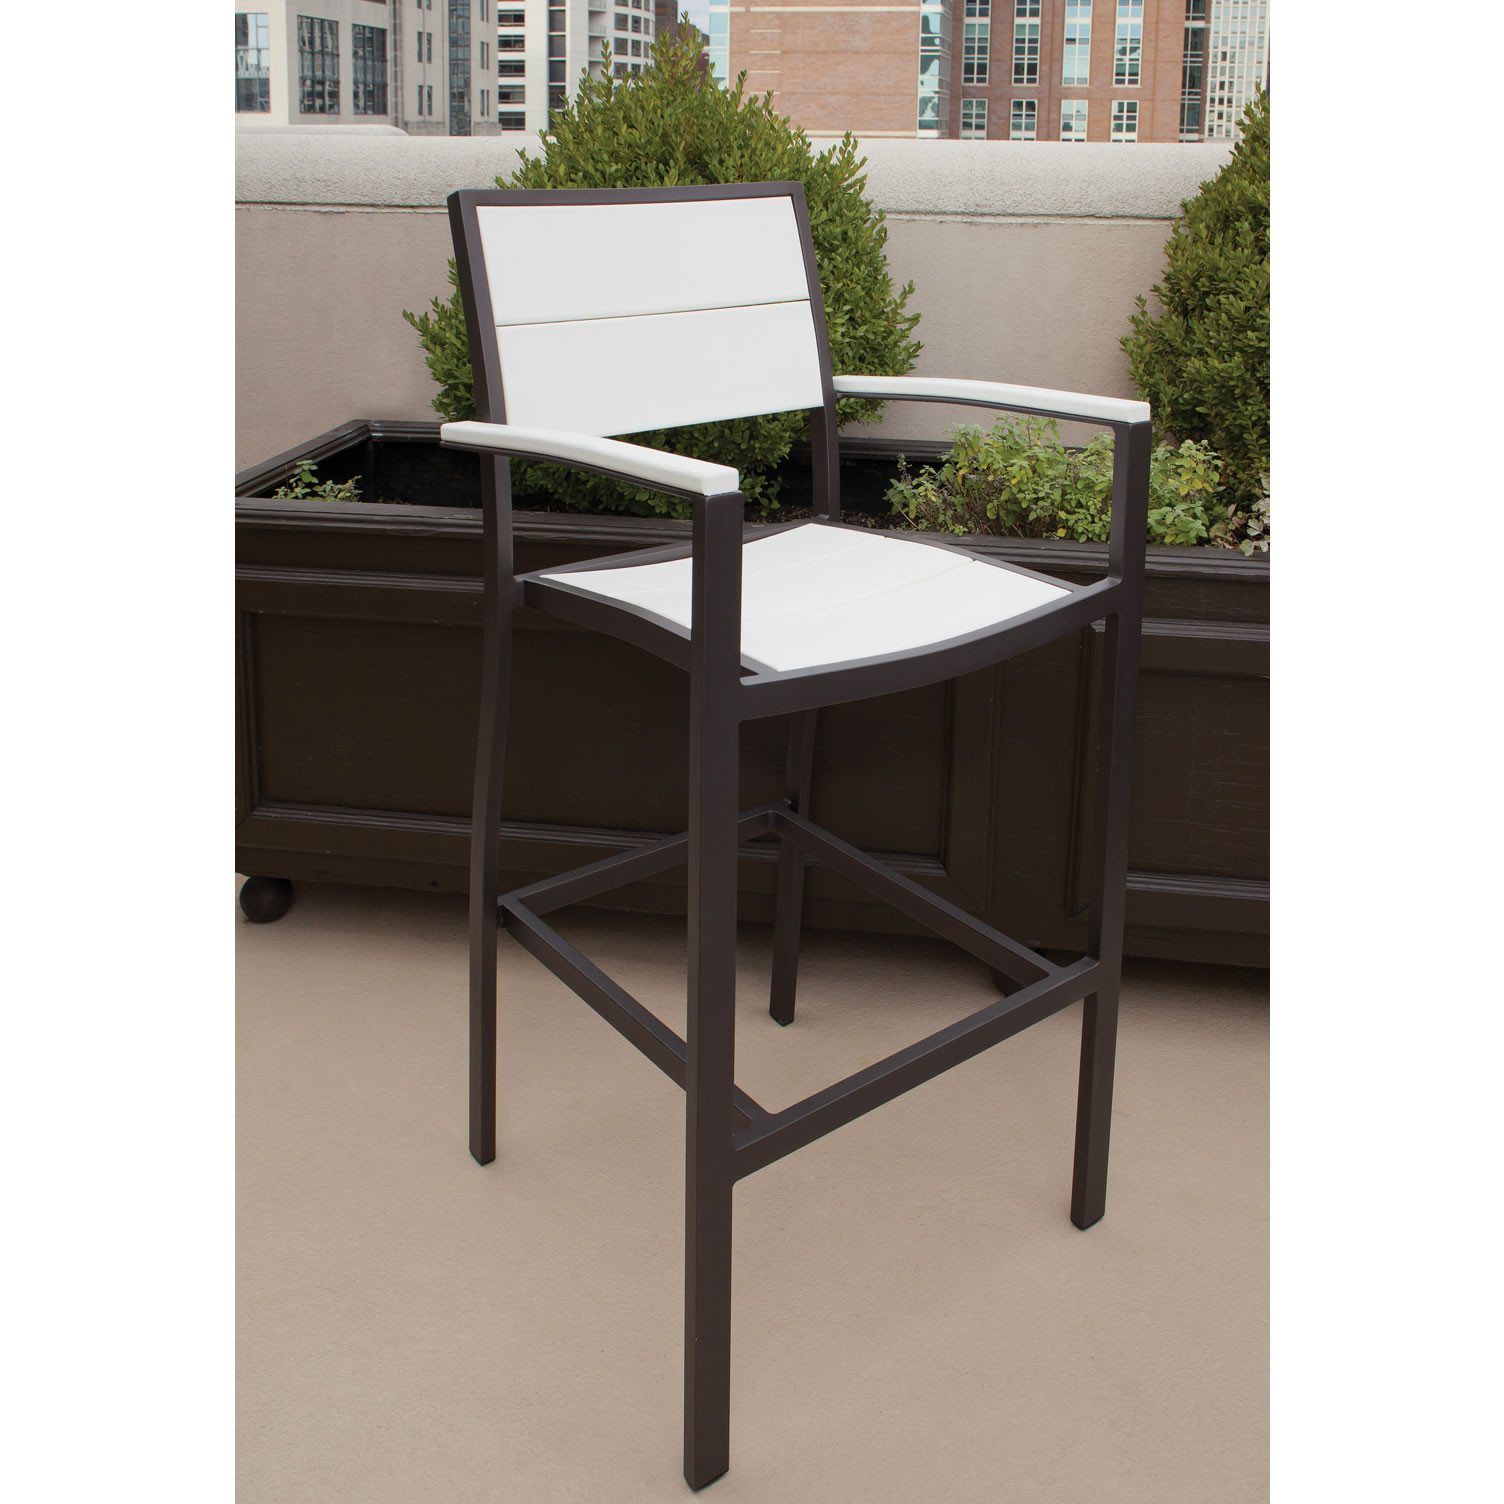 Trex® Outdoor Furniture Surf City Bar Arm Chair